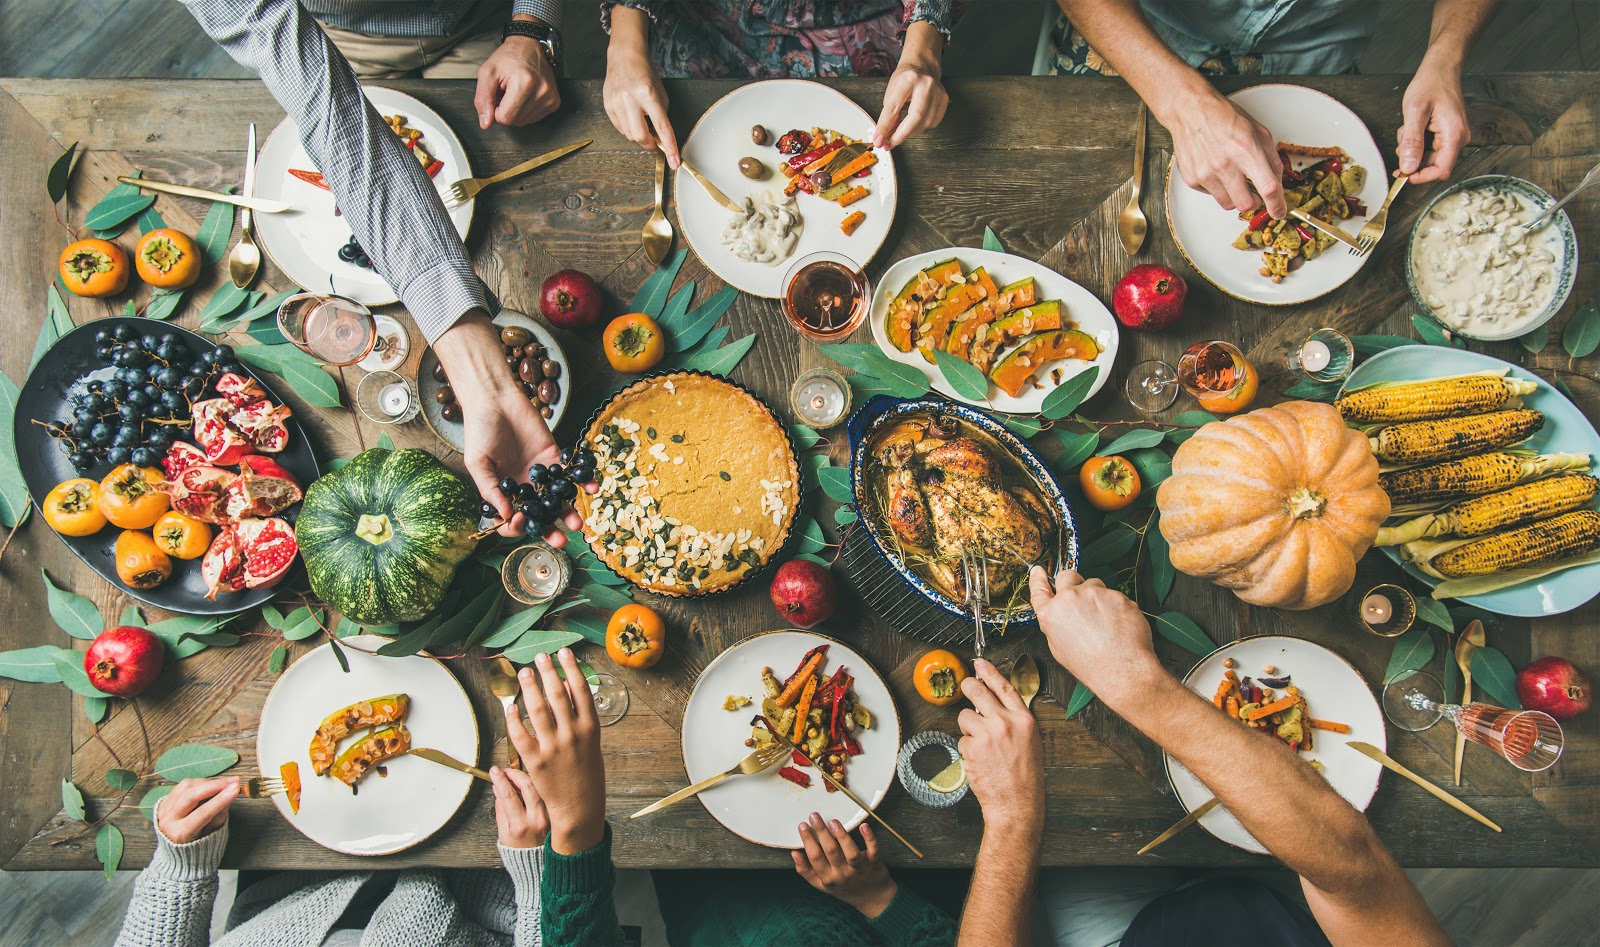 Hands reach across a Thanksgiving table for food